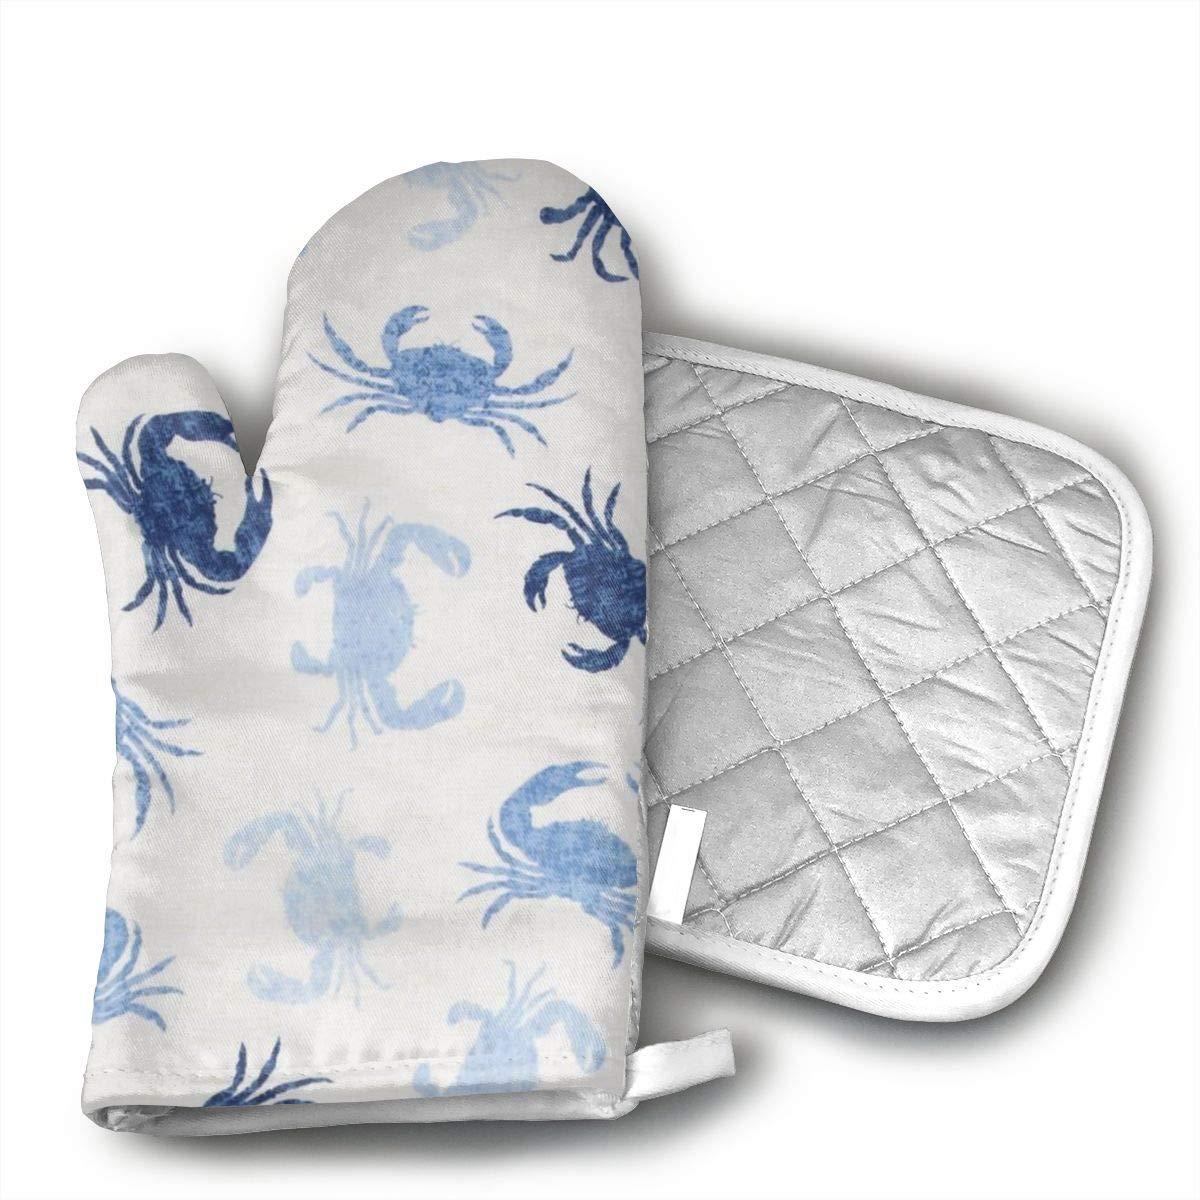 Jiqnajn6 Beach Crabs Oven Mitts,Heat Resistant Oven Gloves, Safe Cooking Baking, Grilling, Barbecue, Machine Washable,Pot Holders.